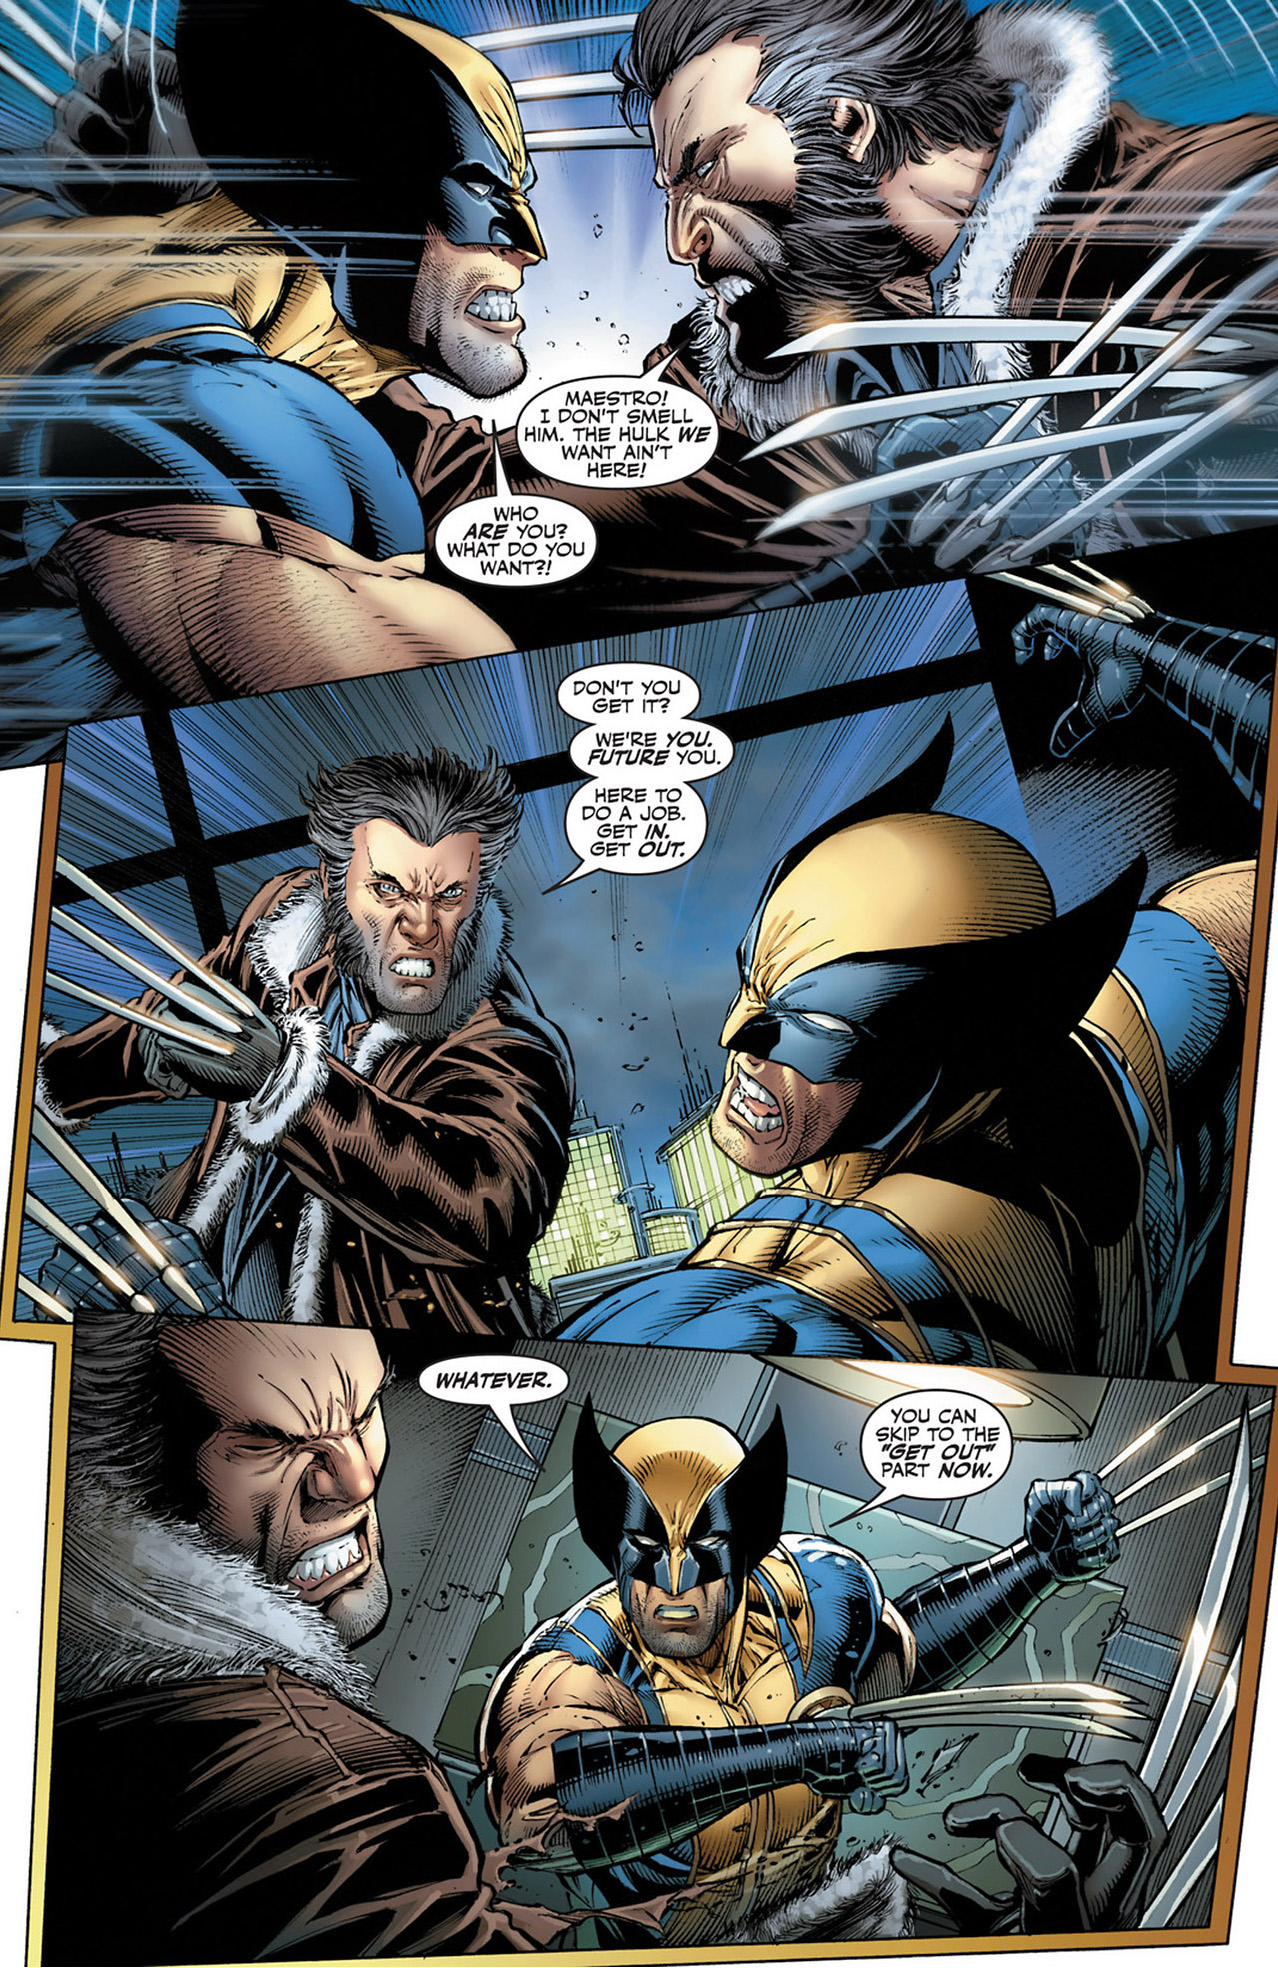 The Hulk and wolverine vs their future selves